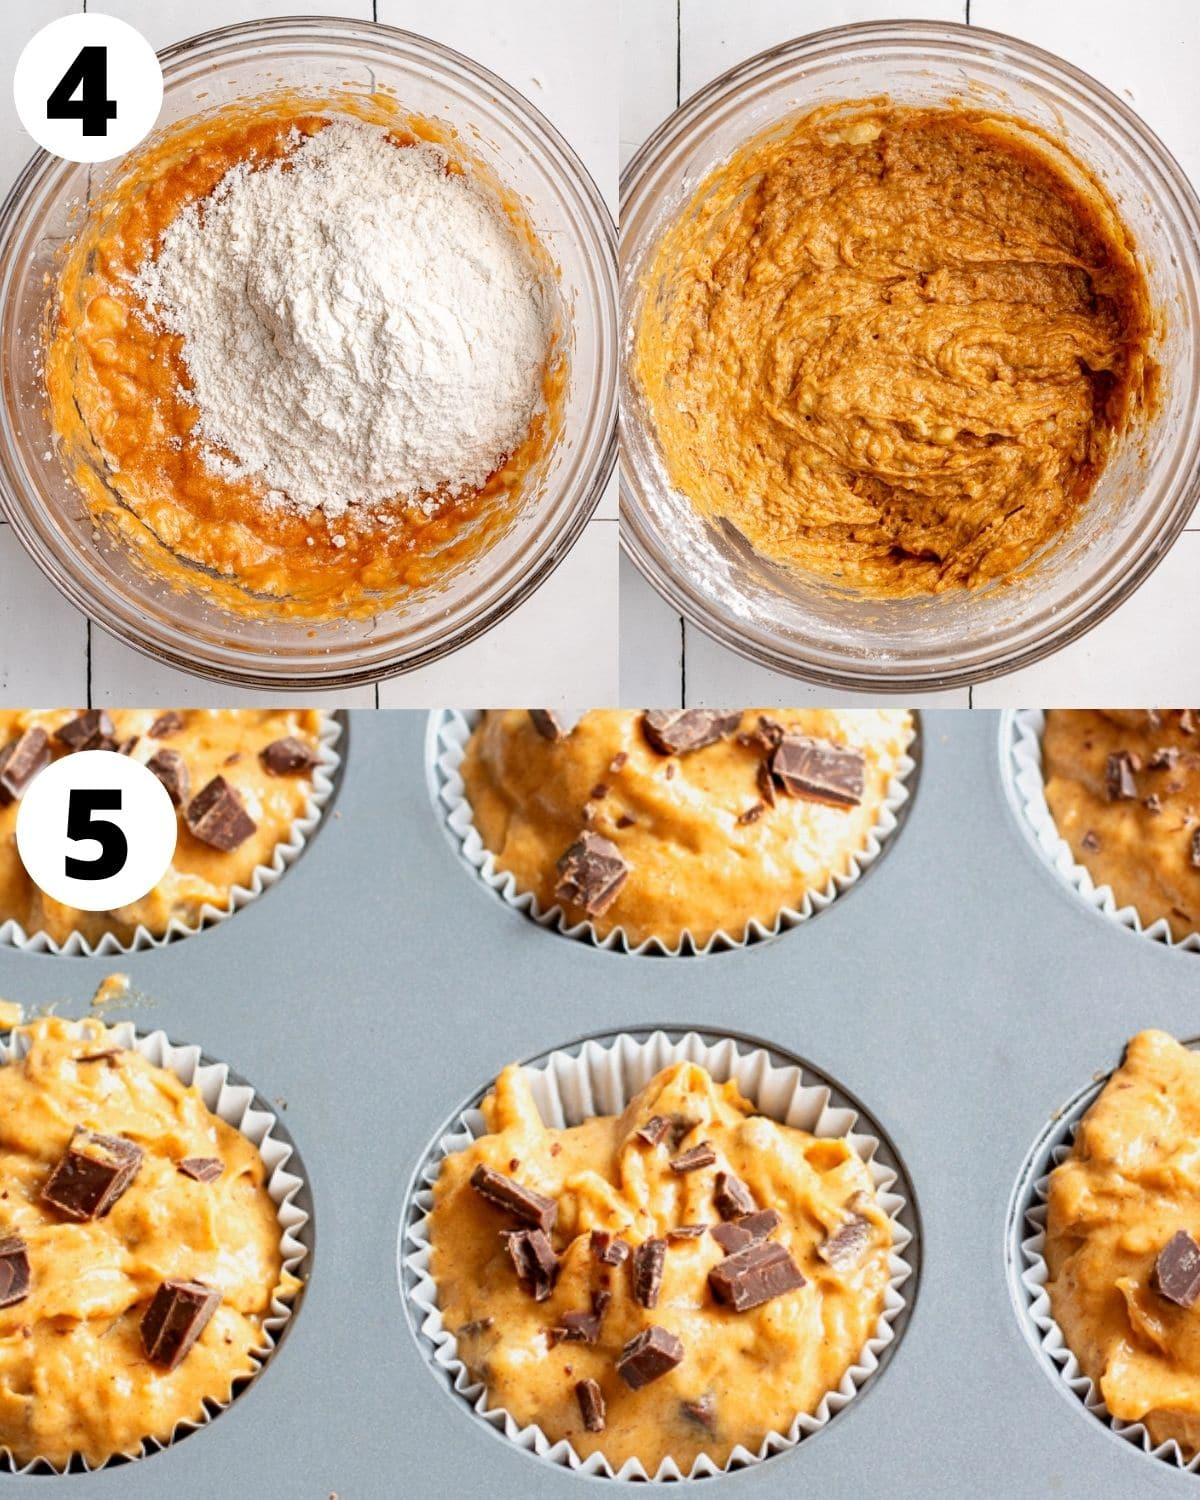 more step by step instructions showing how to make pumpkin banana muffins